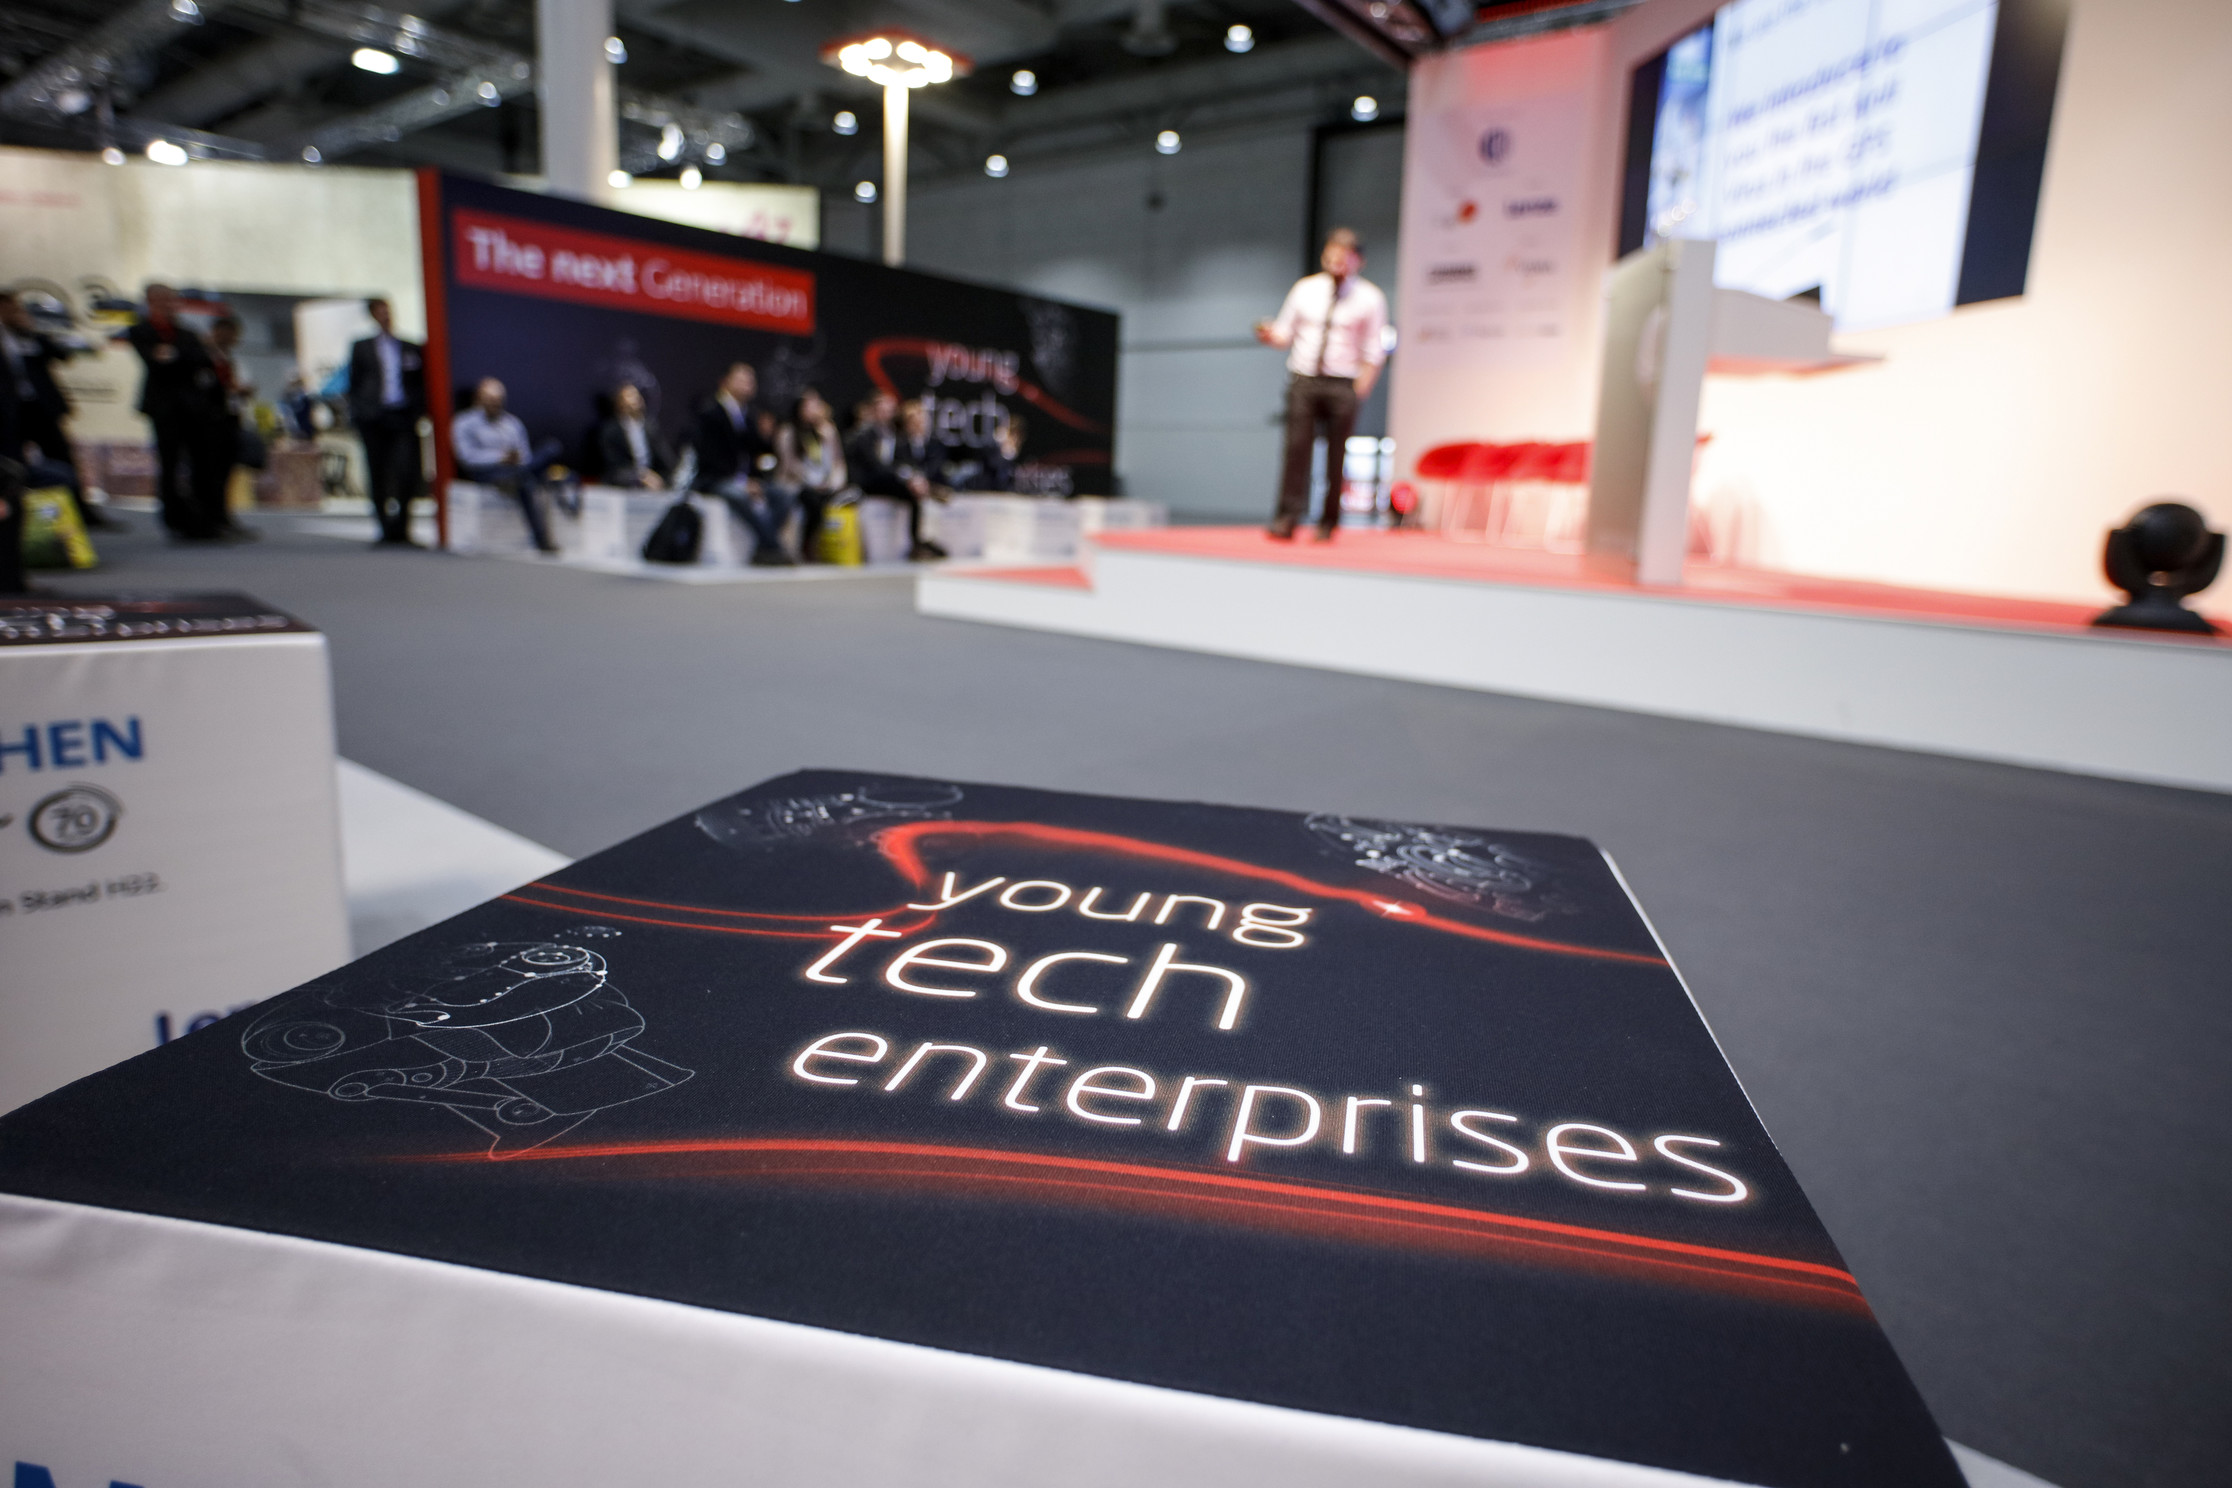 Image source: Hannover Messe